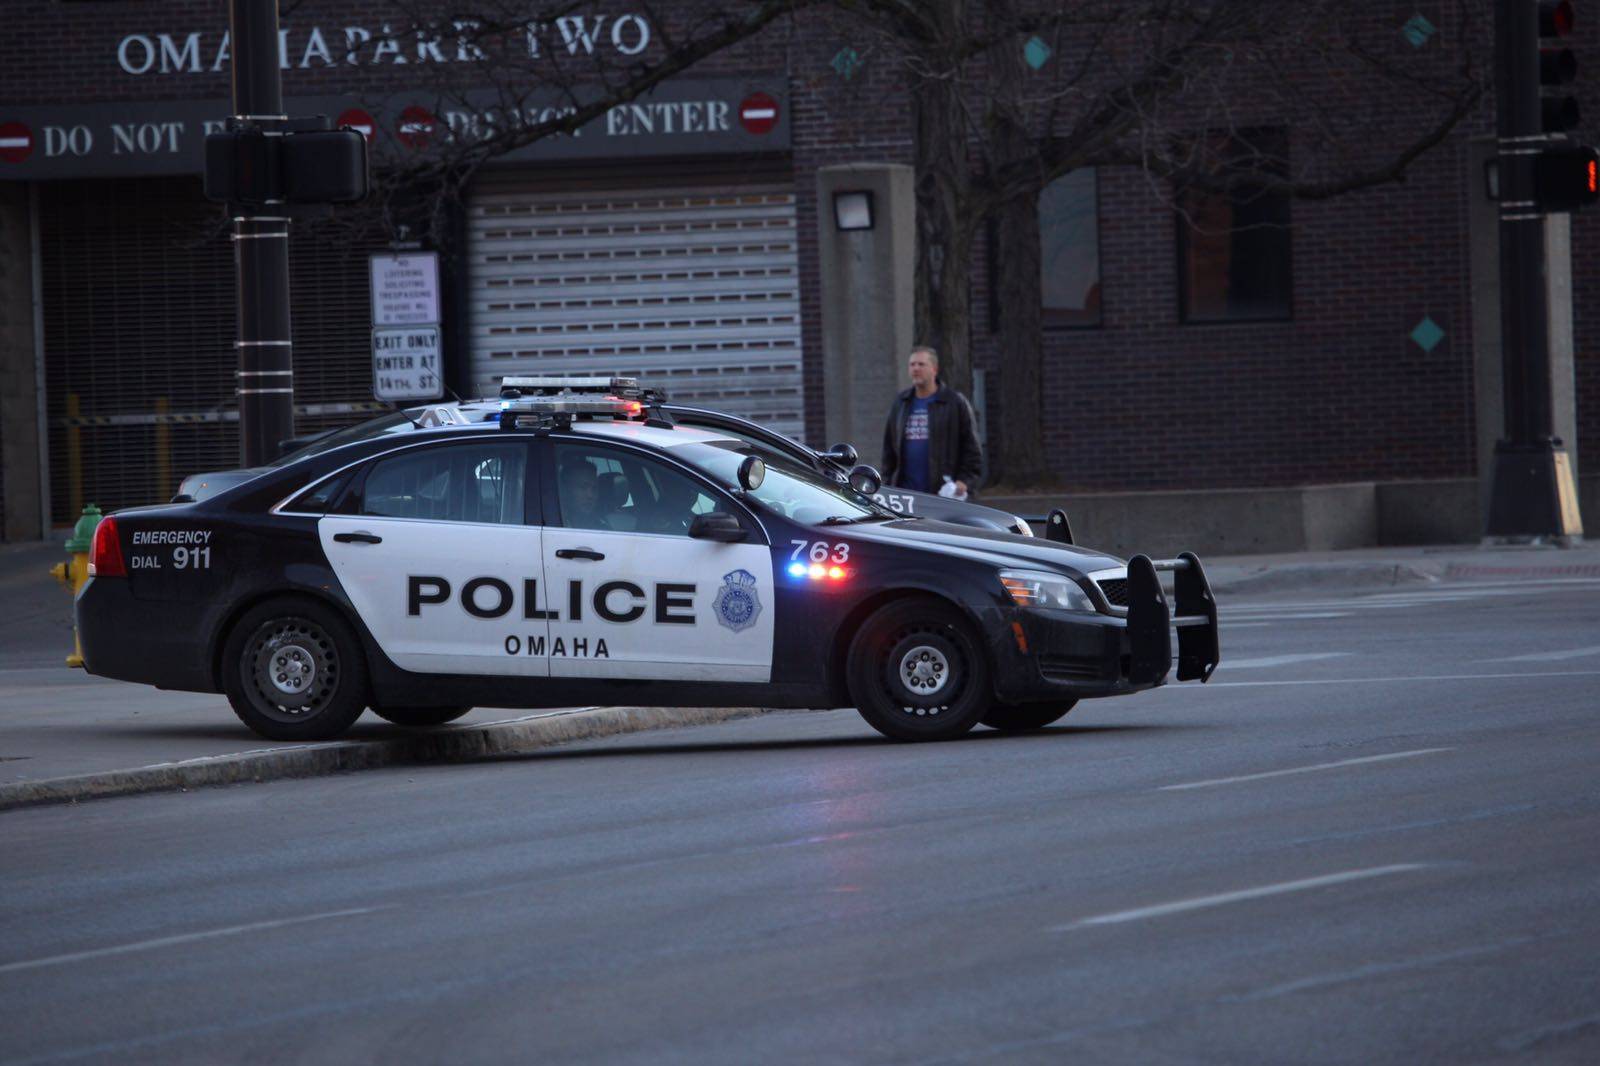 Omaha Police Codes and Signals – MeanStreets